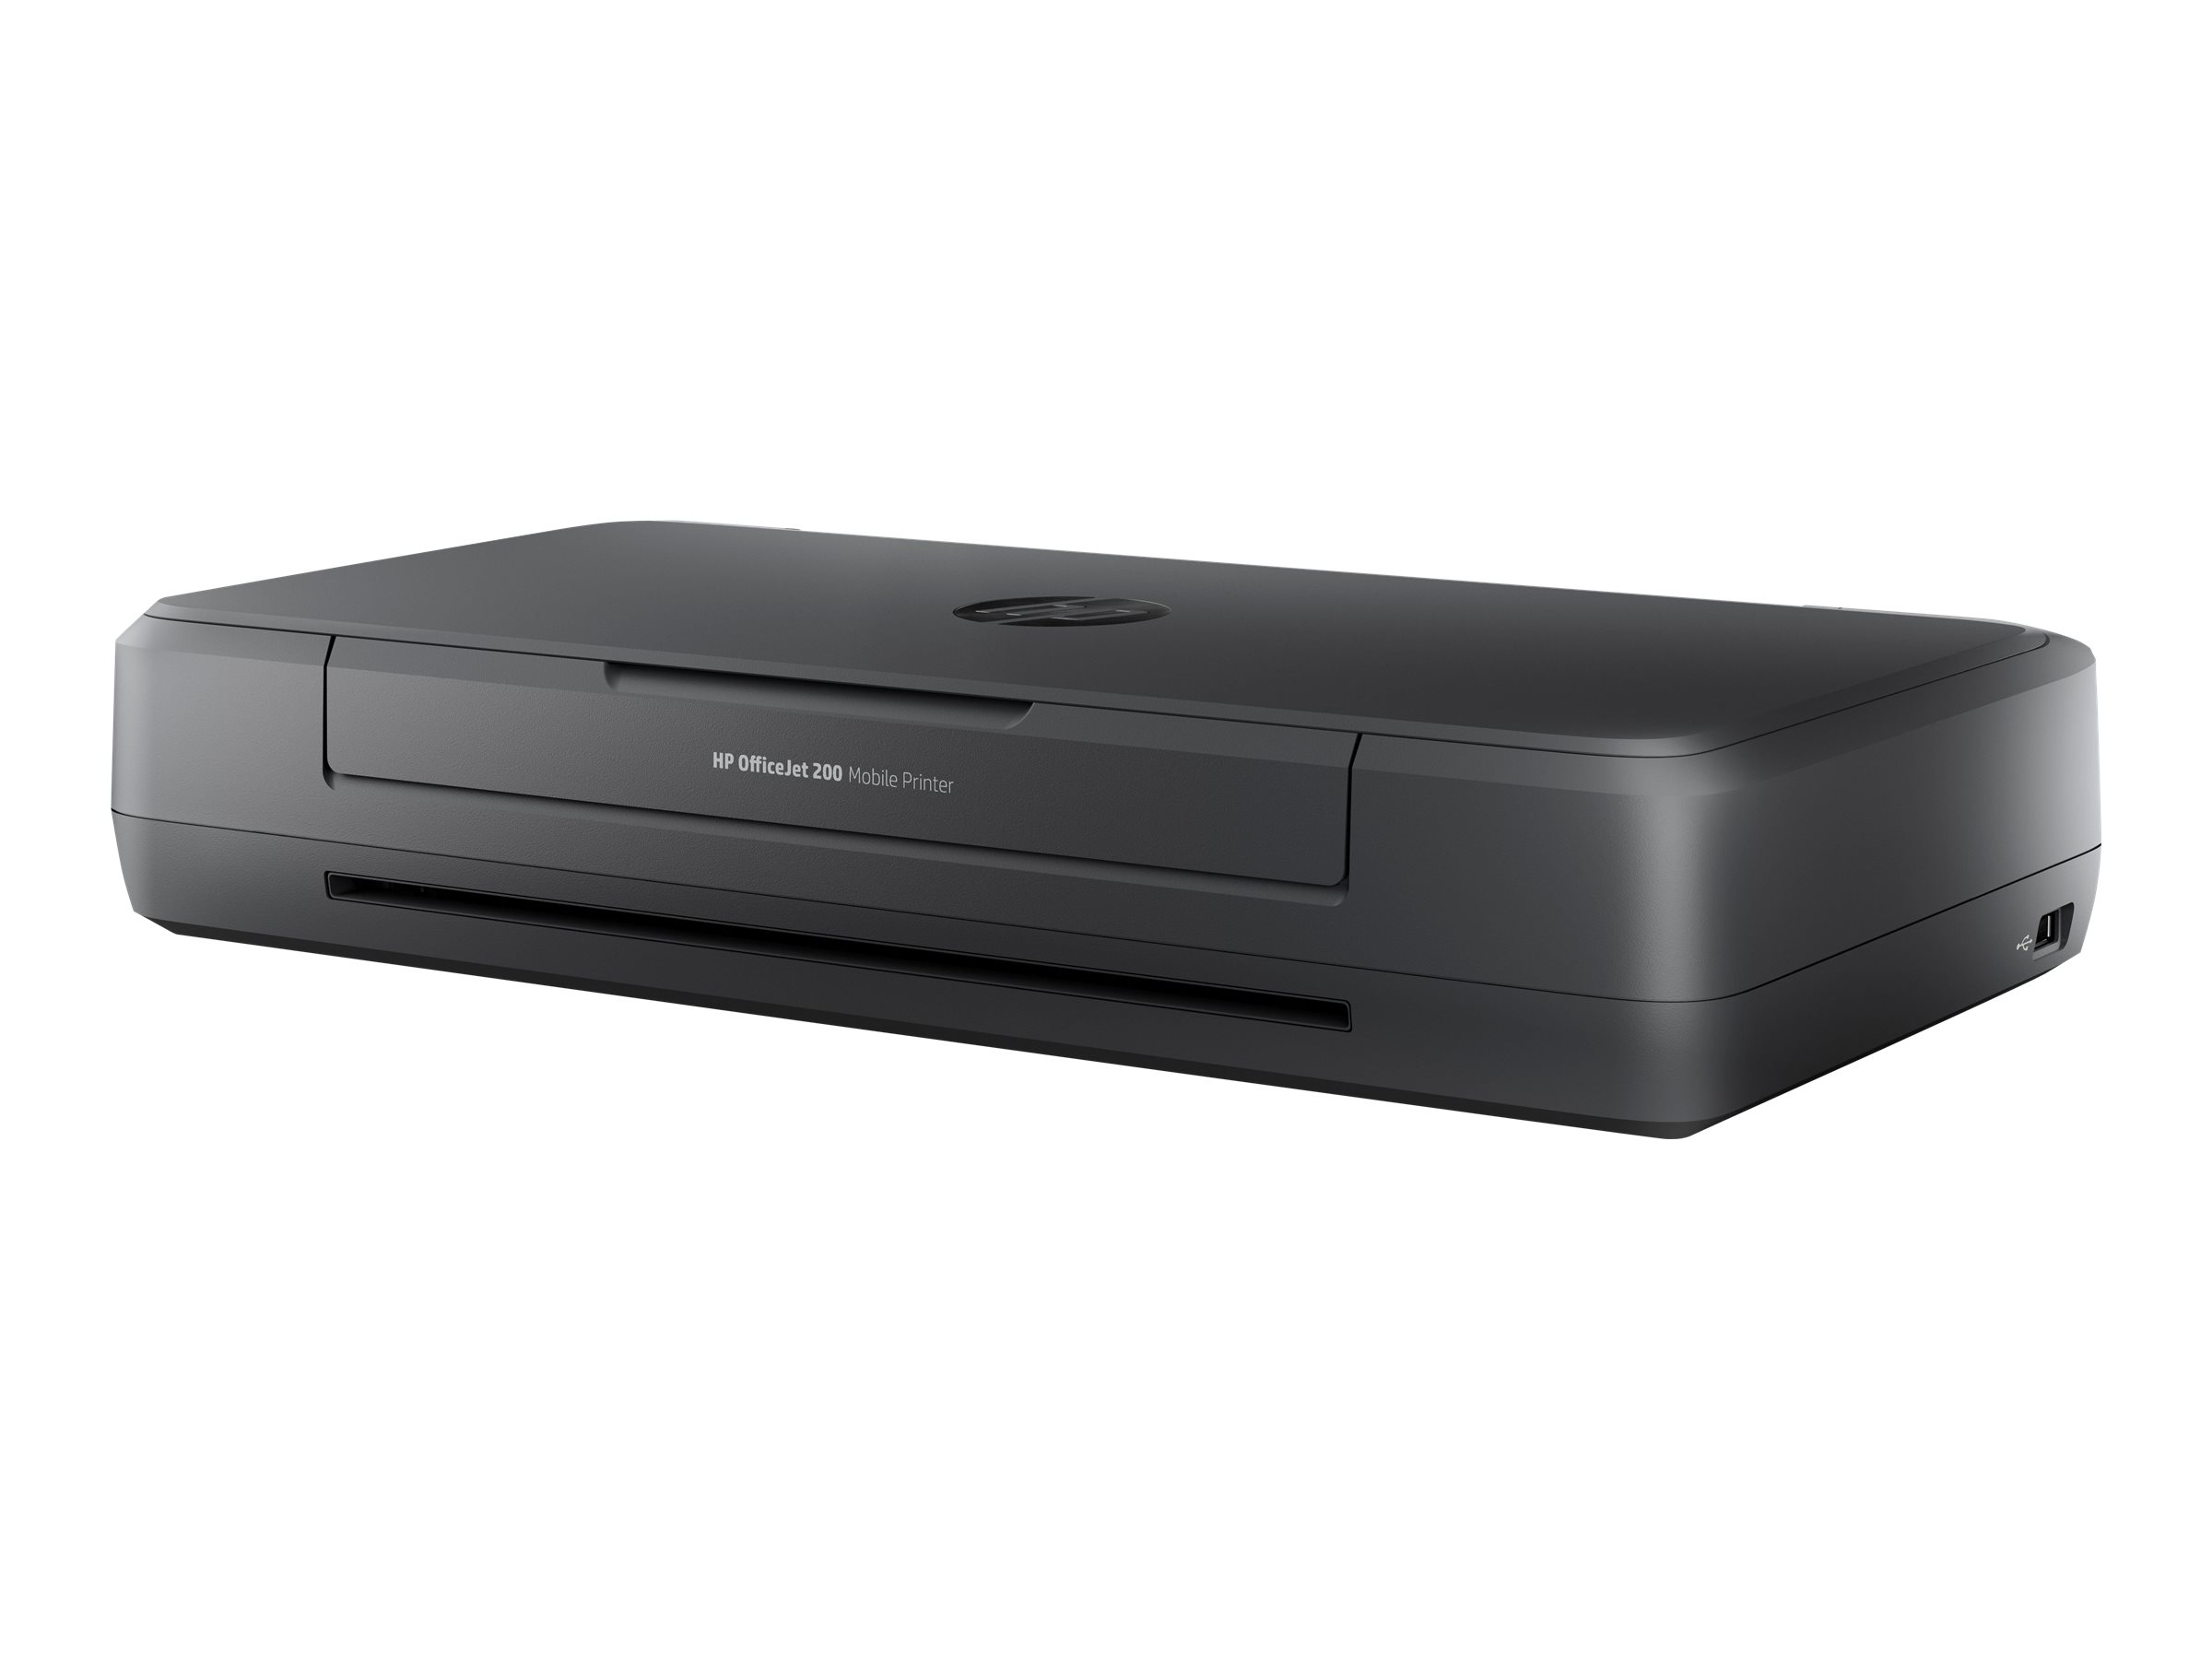 HP Officejet 200 Mobile Printer - imprimante portable - couleur - jet d ... f2174c9862d8